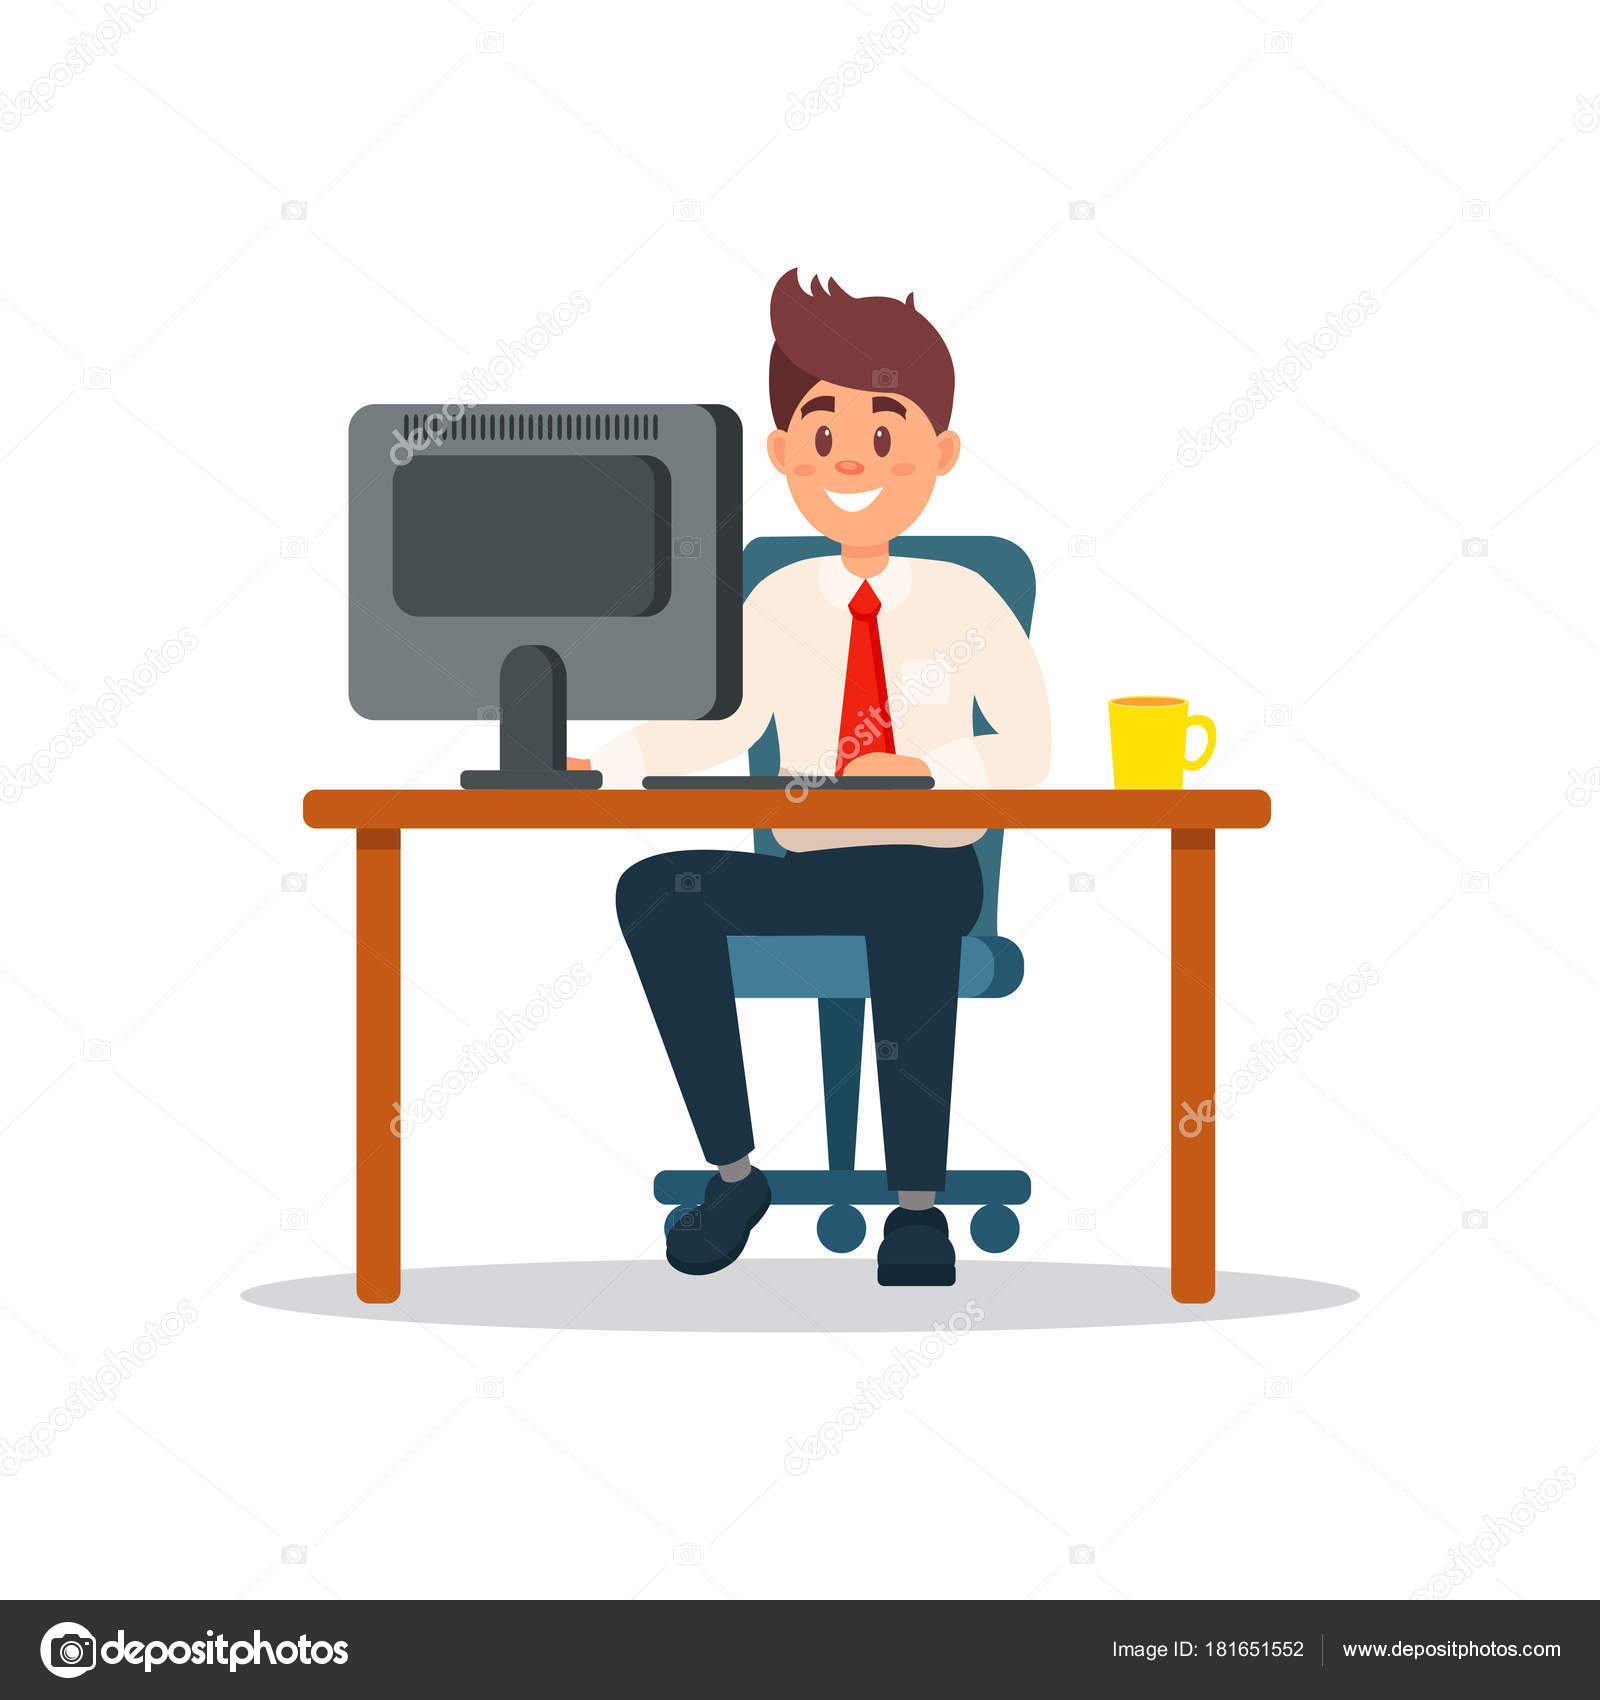 Cartoon Sitting At Computer Smiling Businessman Sitting At The Desk Working With Laptop Computer Business Character Working In Office Cartoon Vector Illustration Stock Vector C Happypictures 181651552